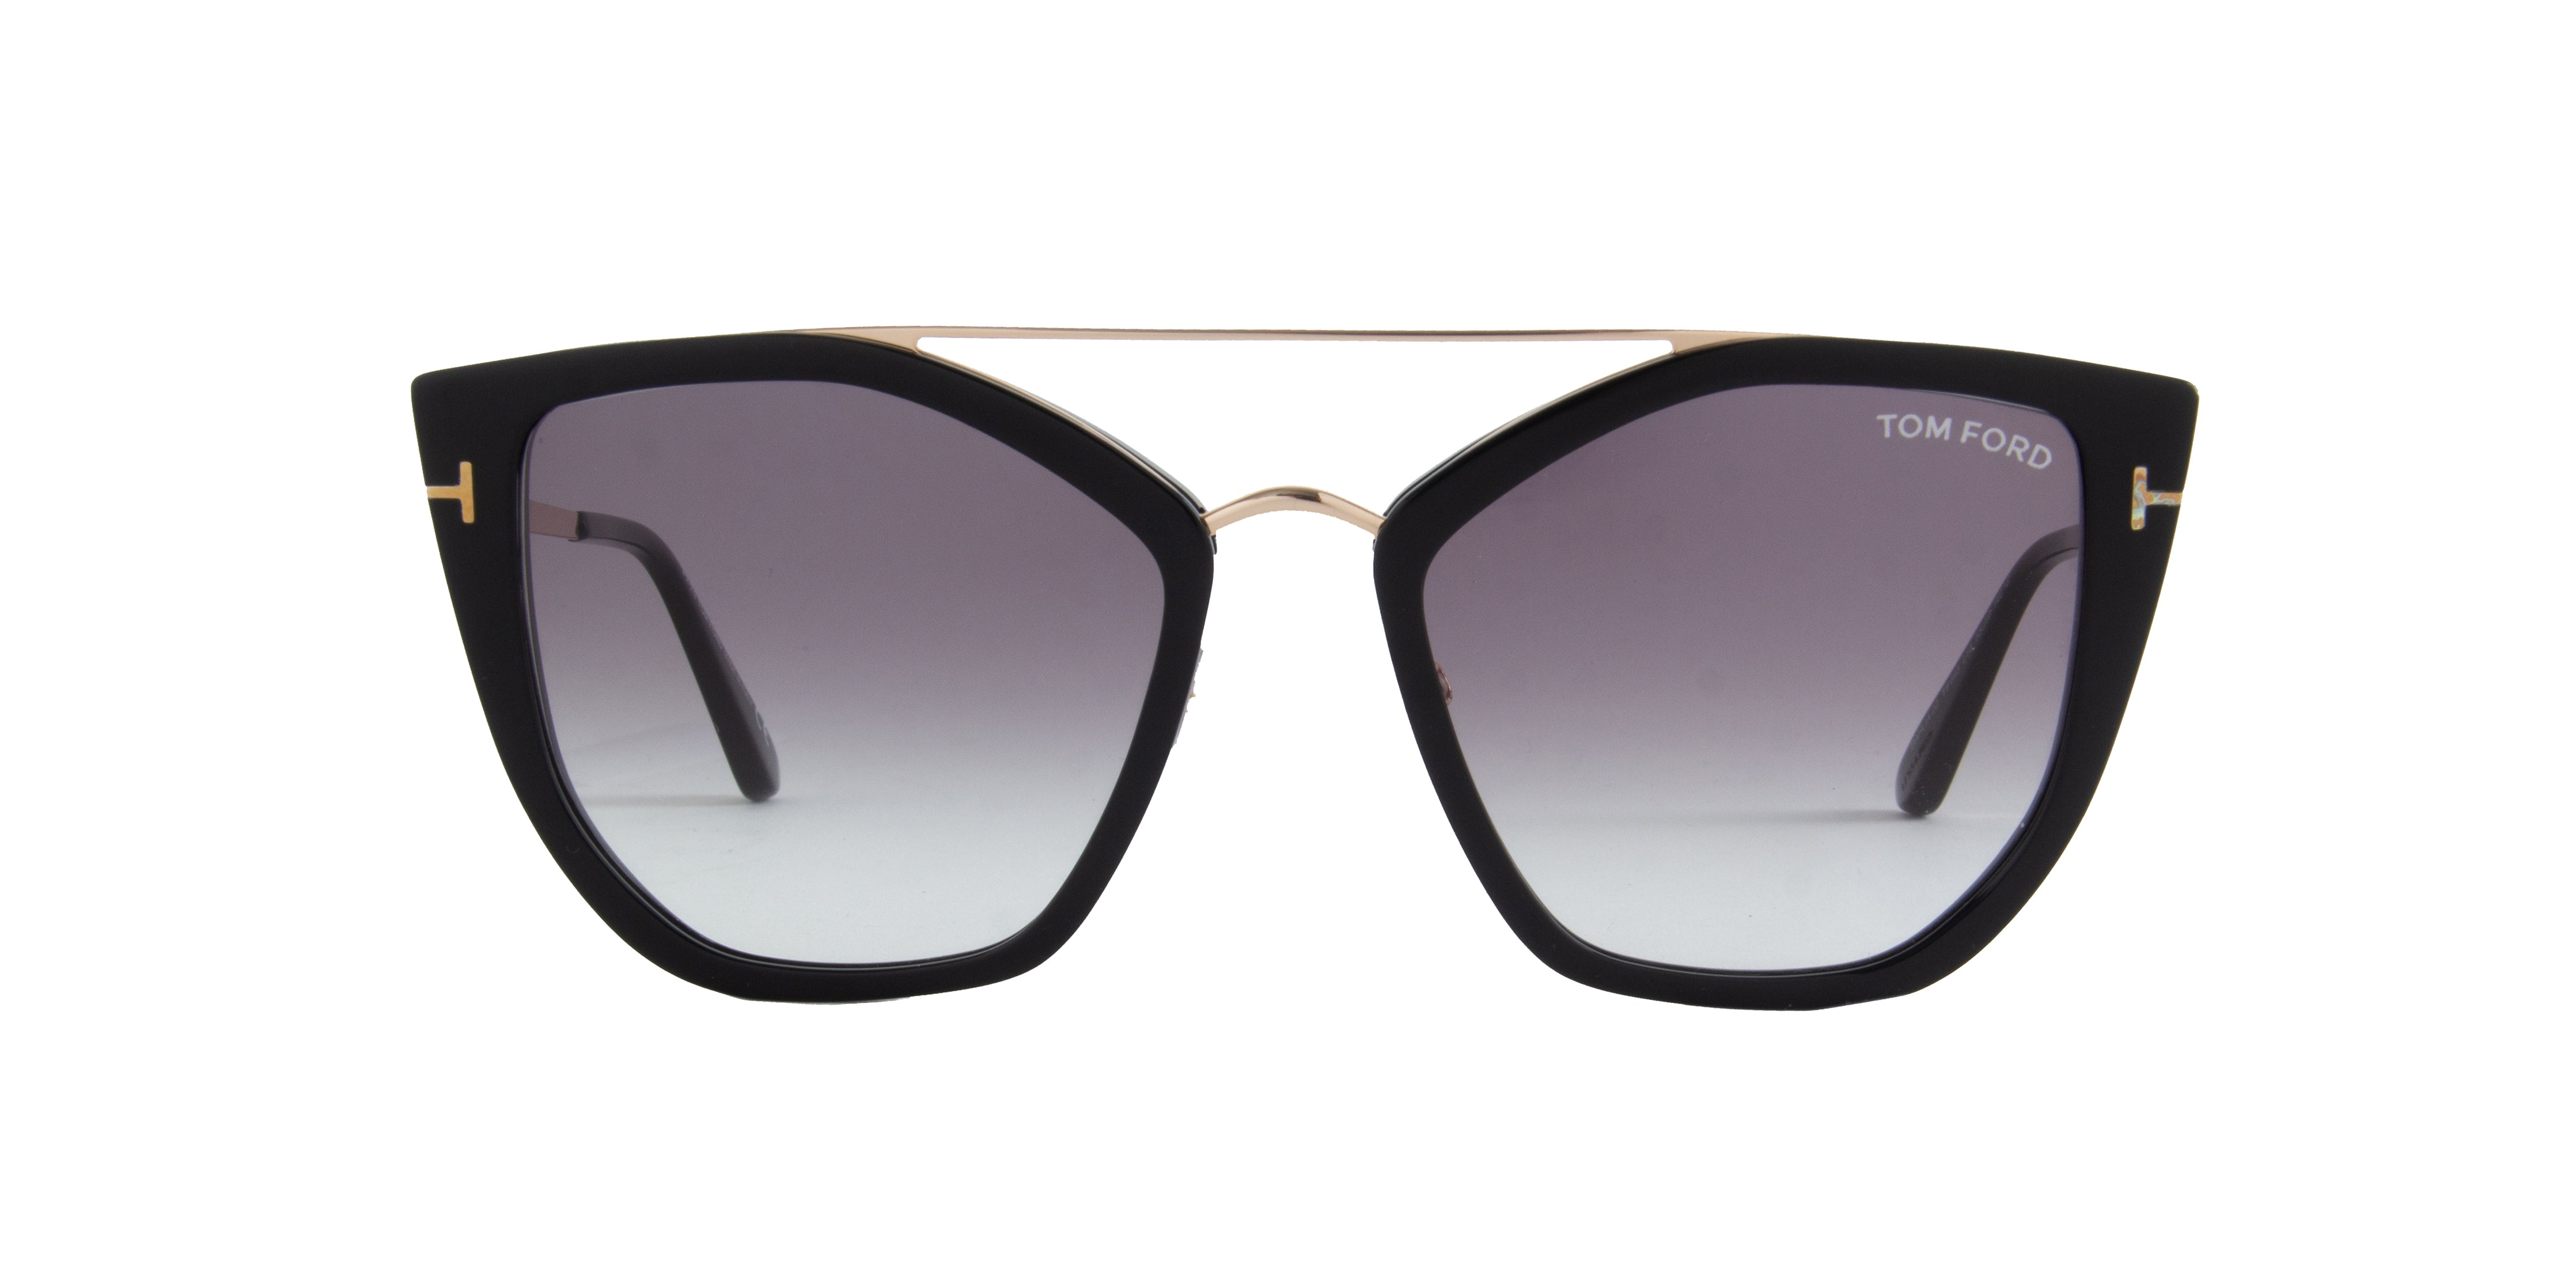 Tom Ford - FT0648 Shiny Black Cat Eye Women Sunglasses - 55mm